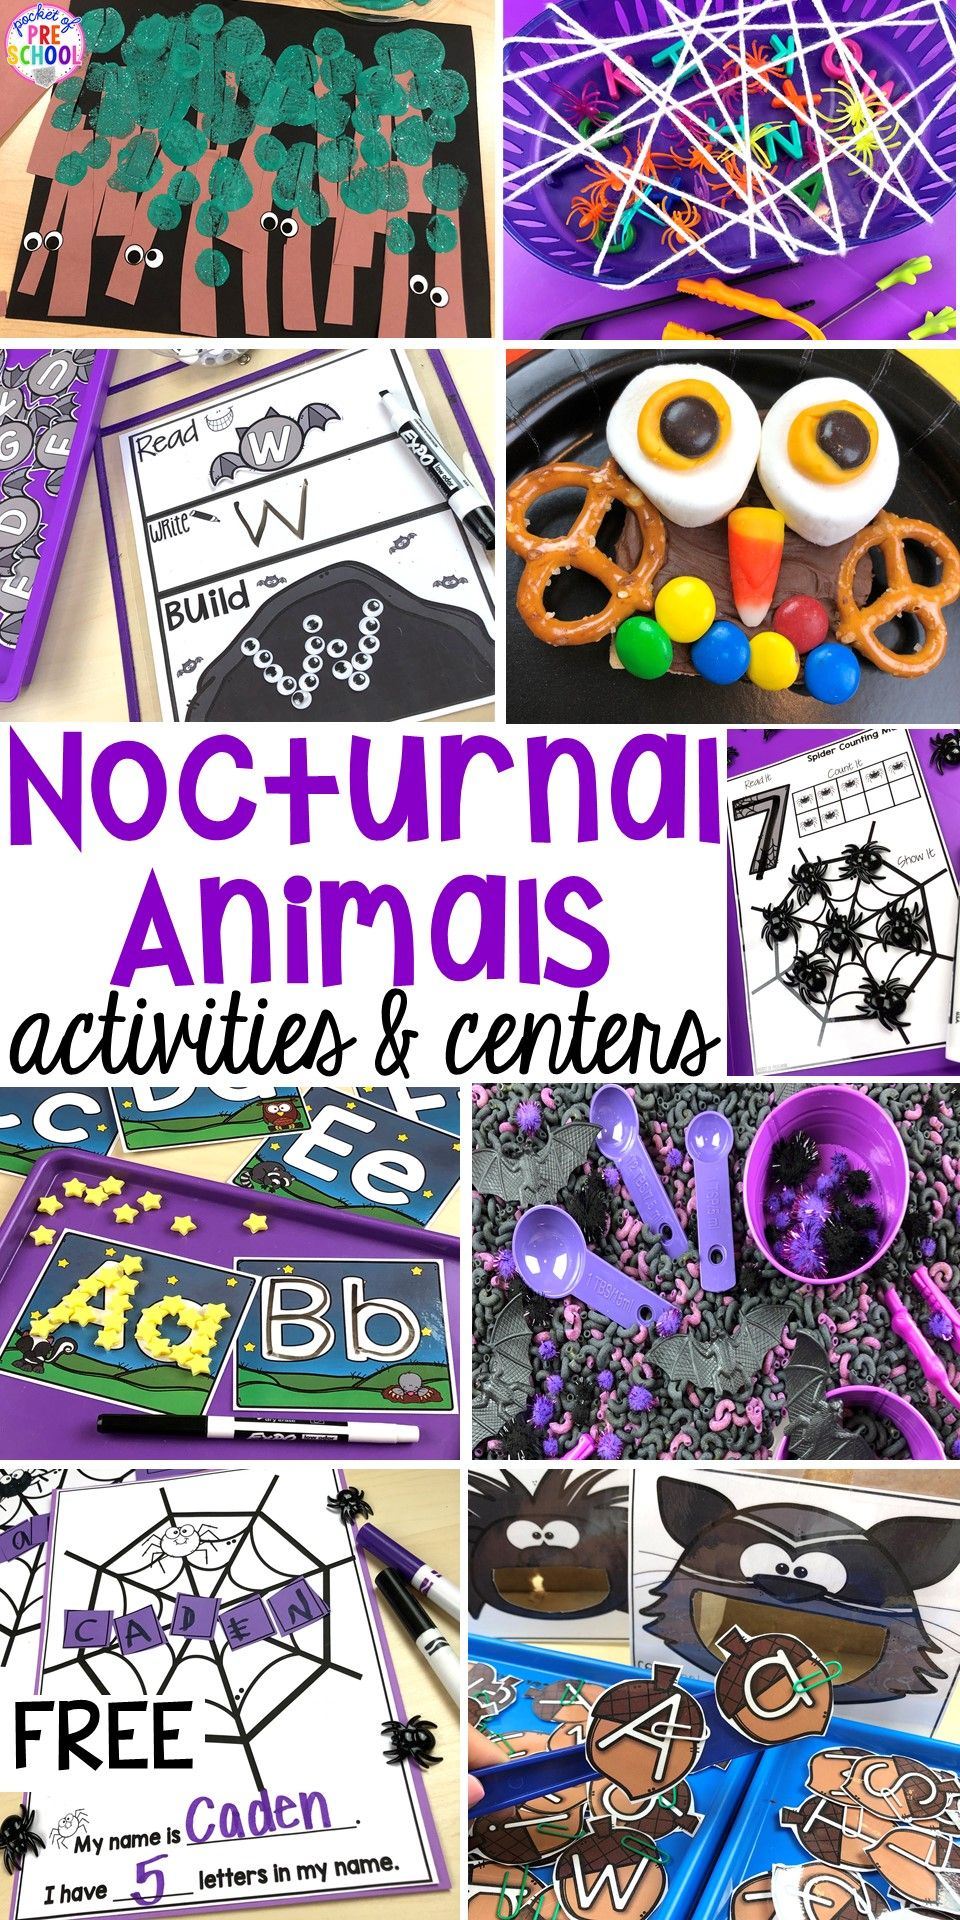 Nocturnal Animals Kids Stories Kids educational videos